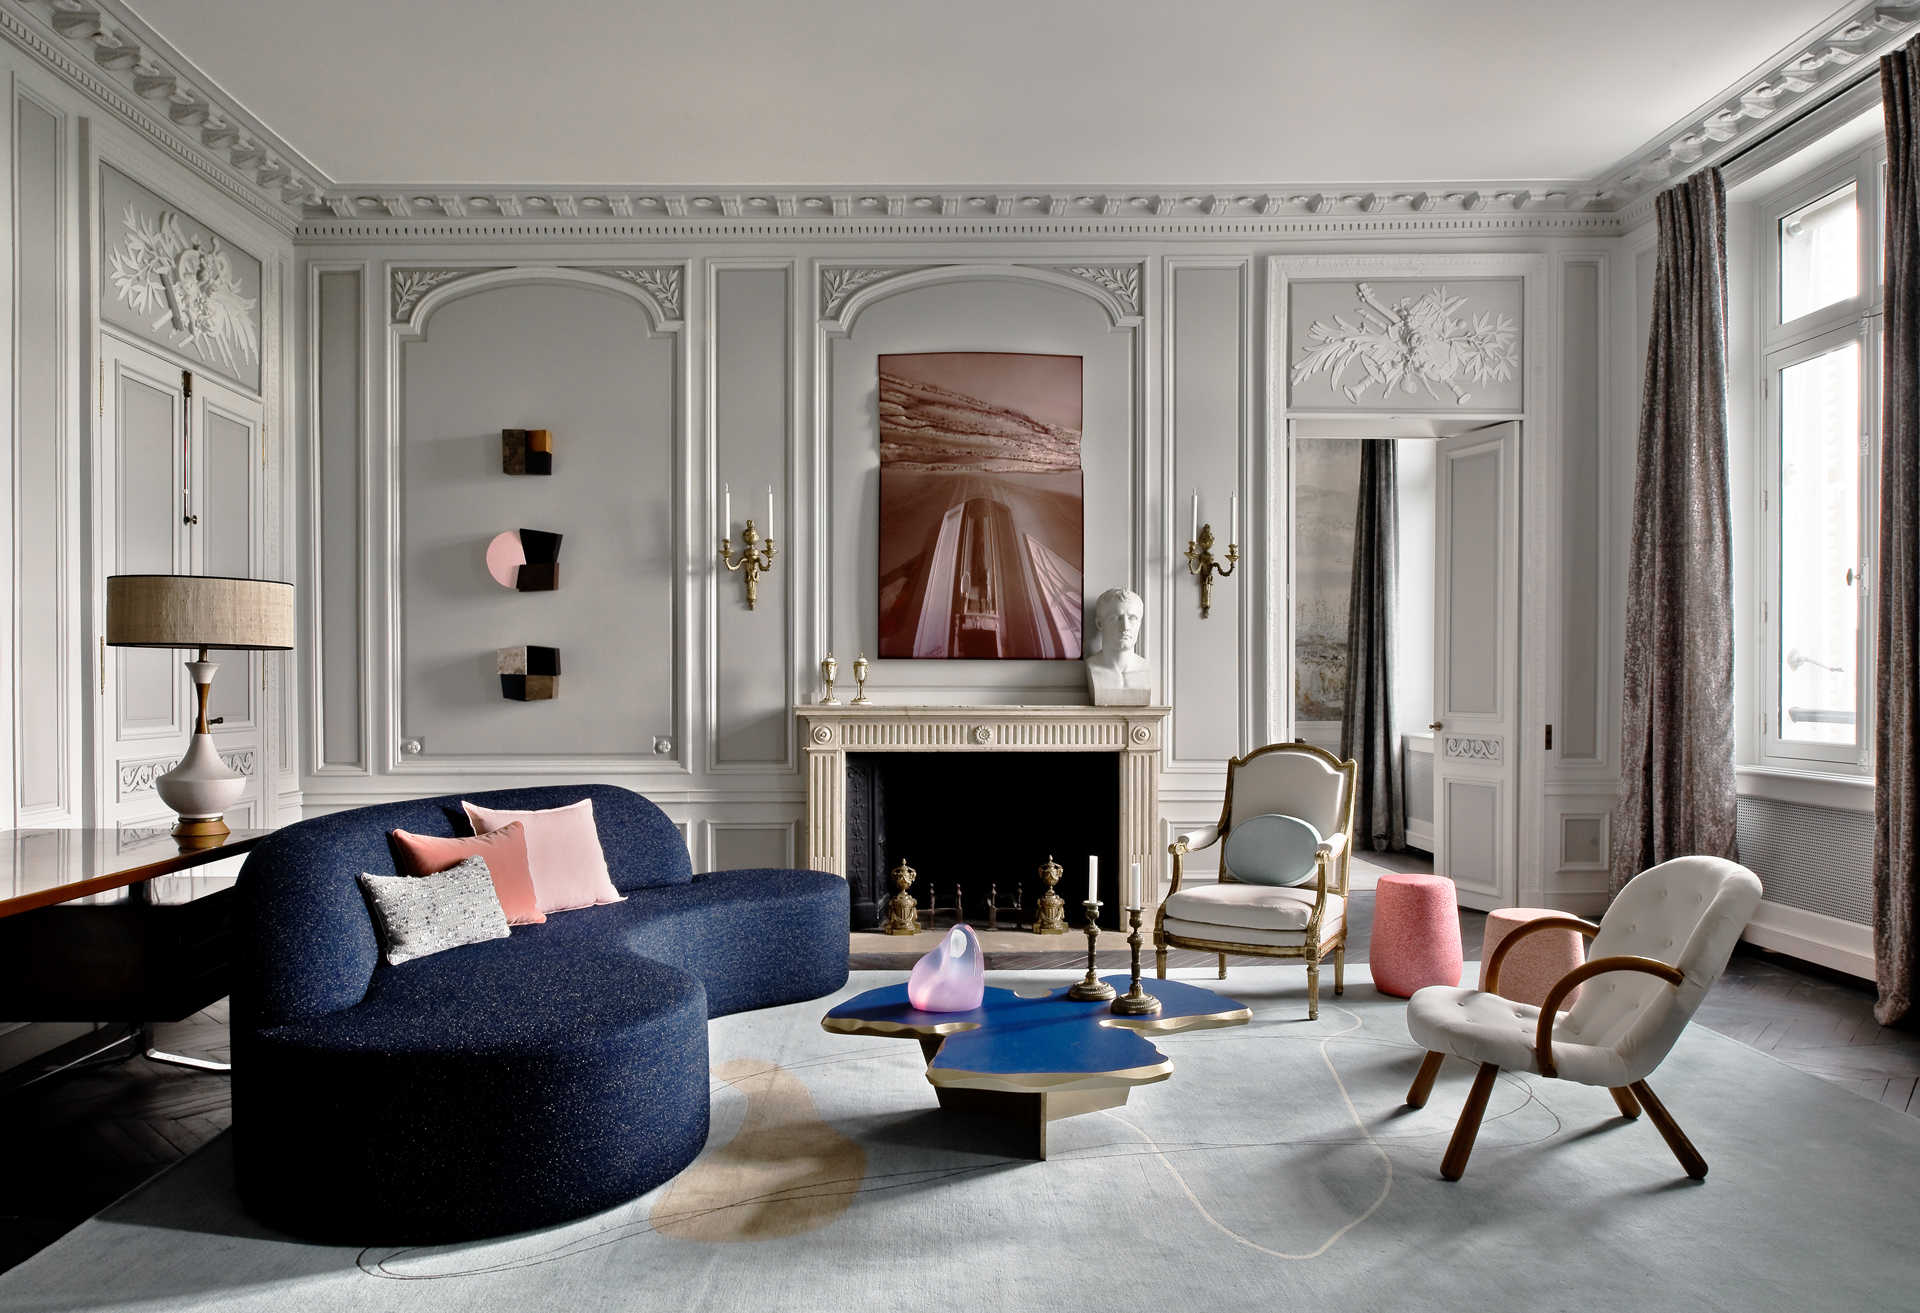 Inspiring Interior Design Projects To Discover In Paris (Part 2!) interior design project Inspiring Interior Design Projects To Discover In Paris (Part 2!) Parisian Luxury Home by Jean Louis Deniot